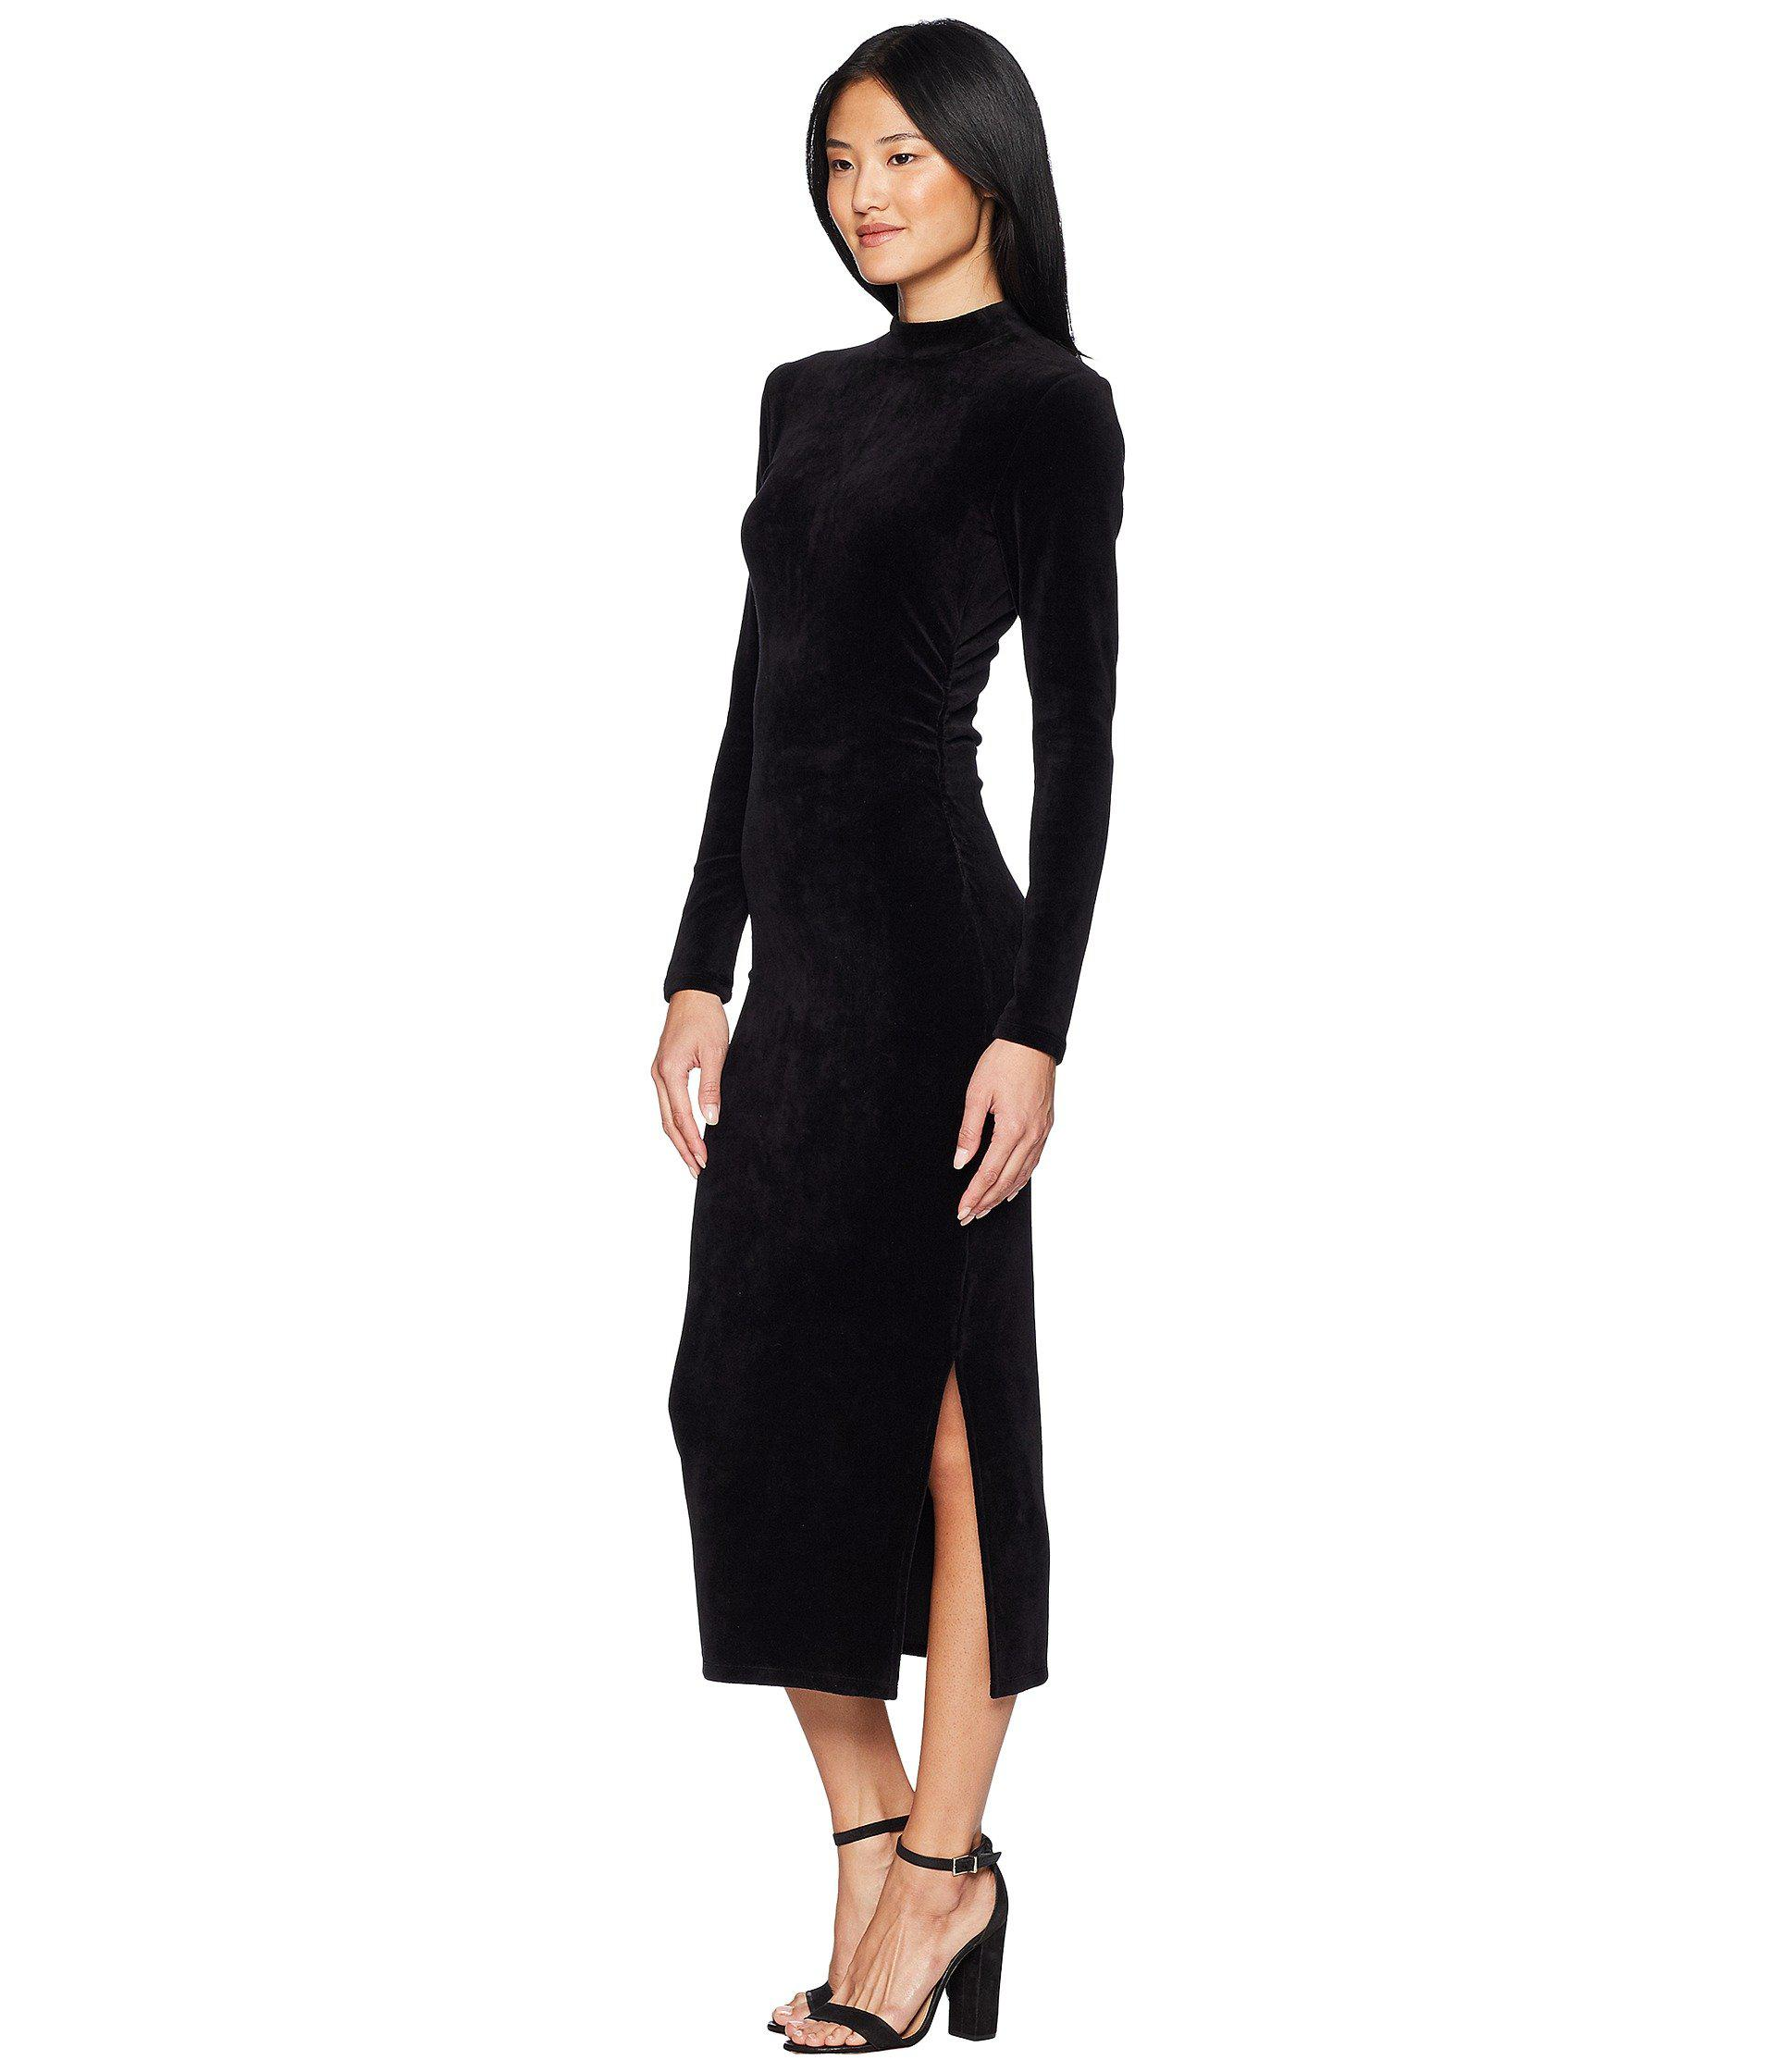 f7ab642254f59 Juicy Couture Track Stretch Velour Mock Neck Midi Dress in Black - Lyst